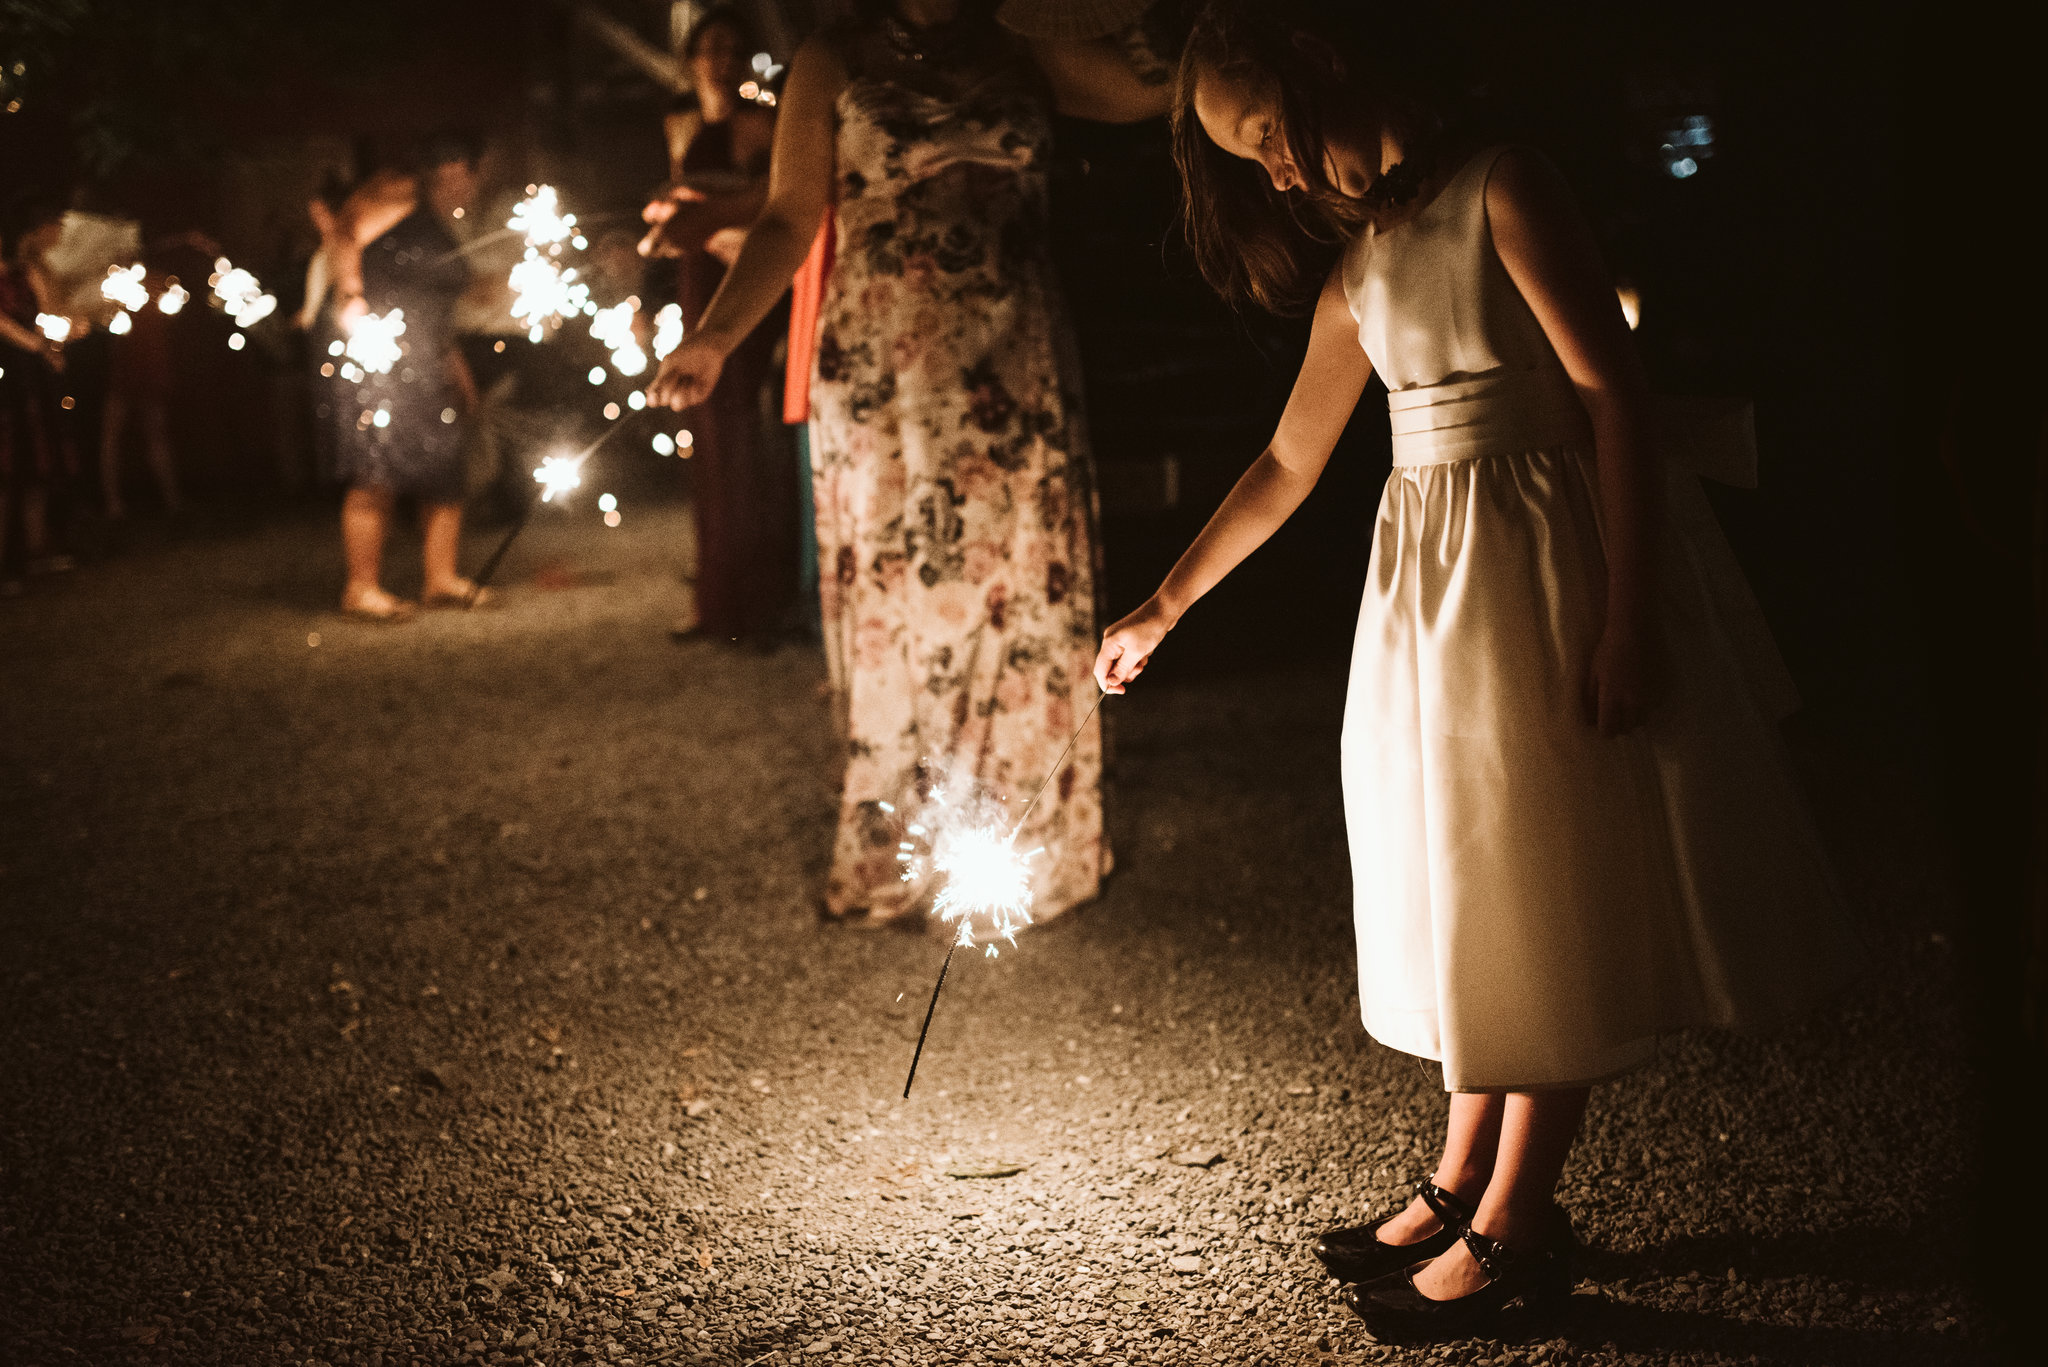 Rocklands Farm, Maryland, Intimate Wedding, Baltimore Wedding Photographer, Sungold Flower Co, Rustic, Romantic, Barn Wedding, Flower Girl Outside with Sparkler, Nighttime Photo